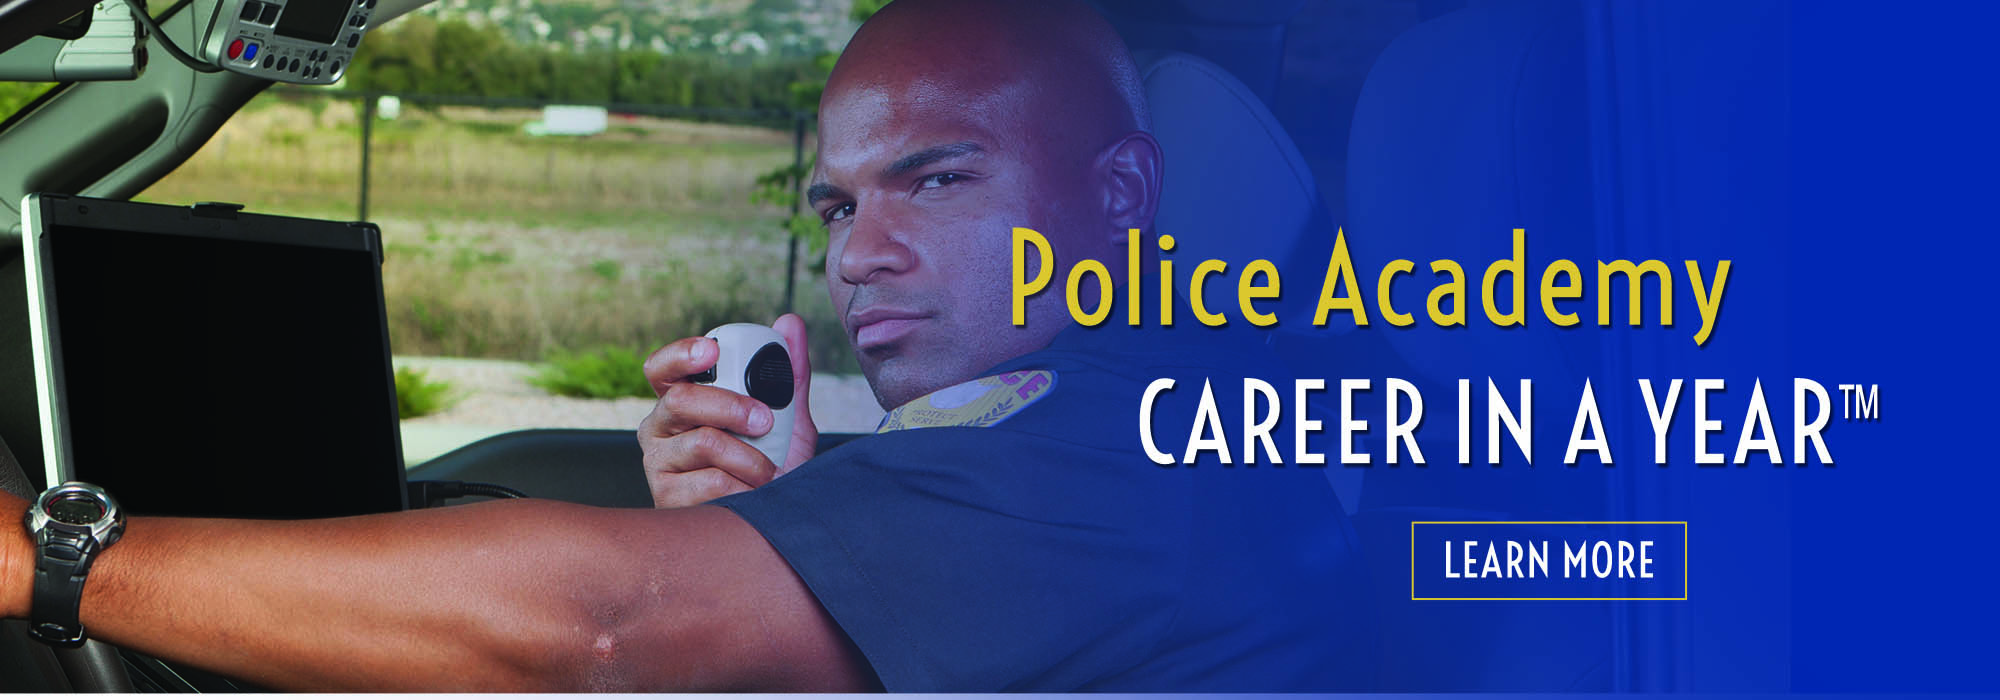 Police Academy Career in a Year Learn More